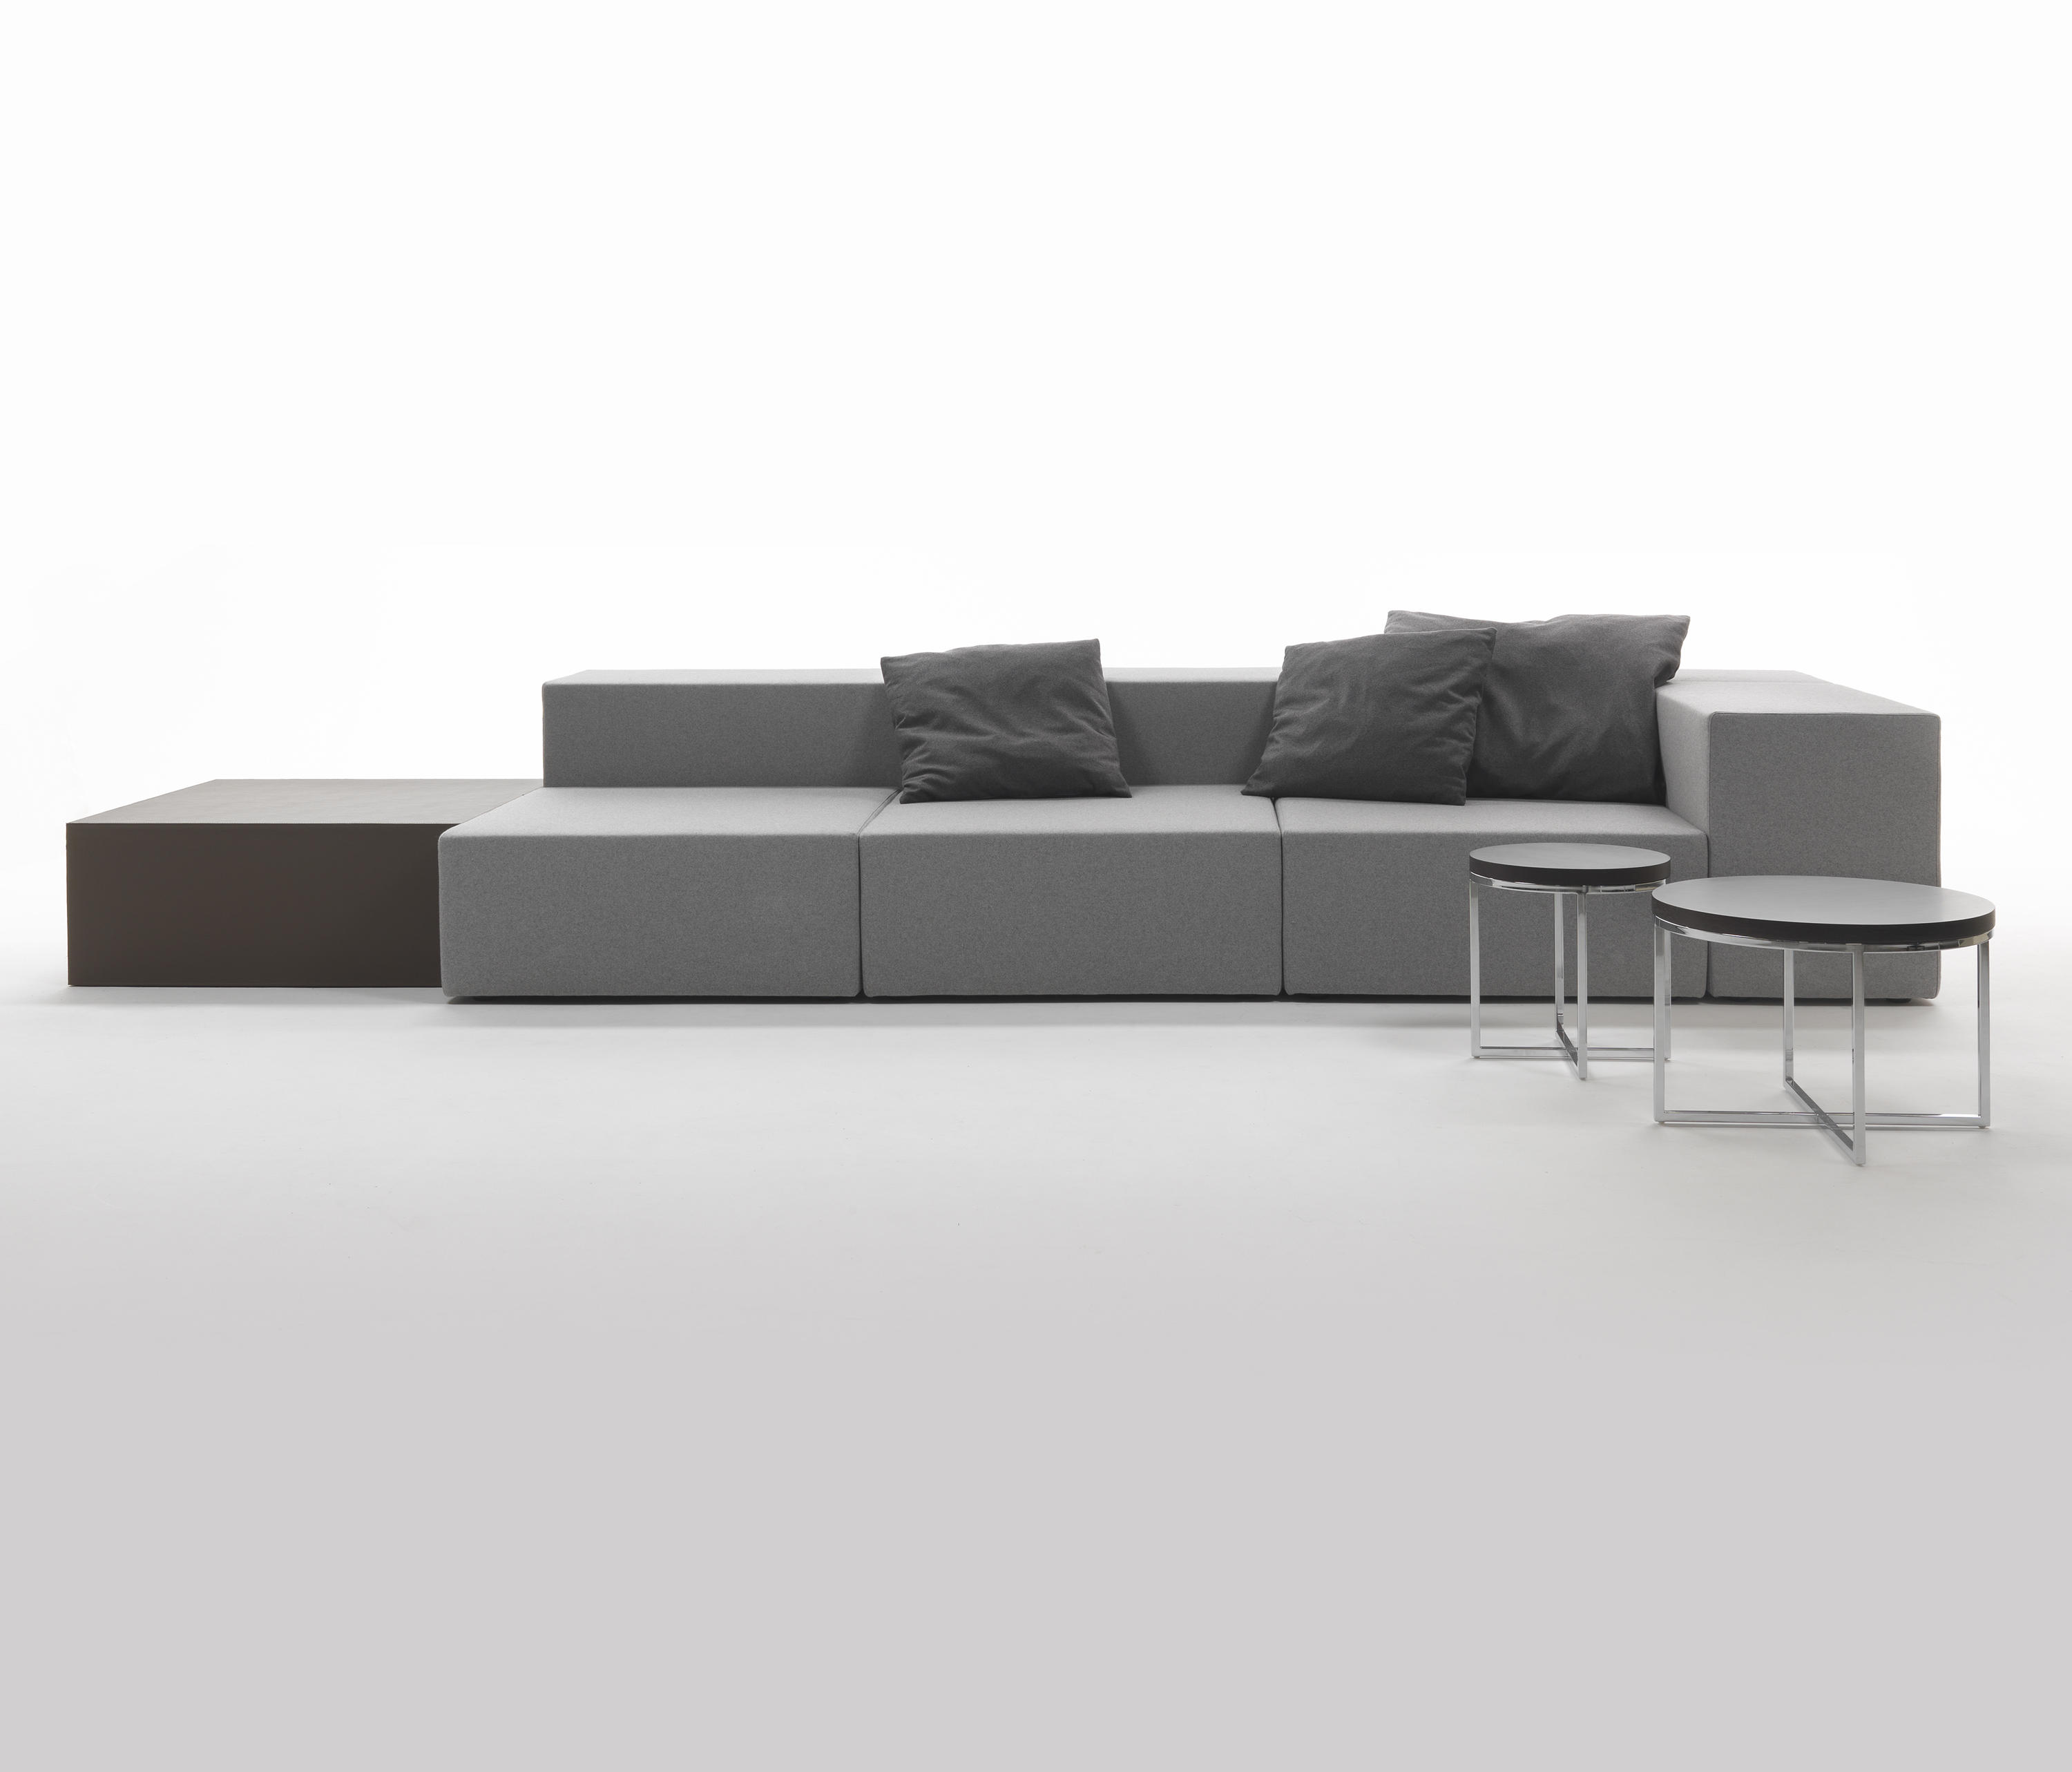 LOUNGE SOFA Modular seating systems from Giulio Marelli